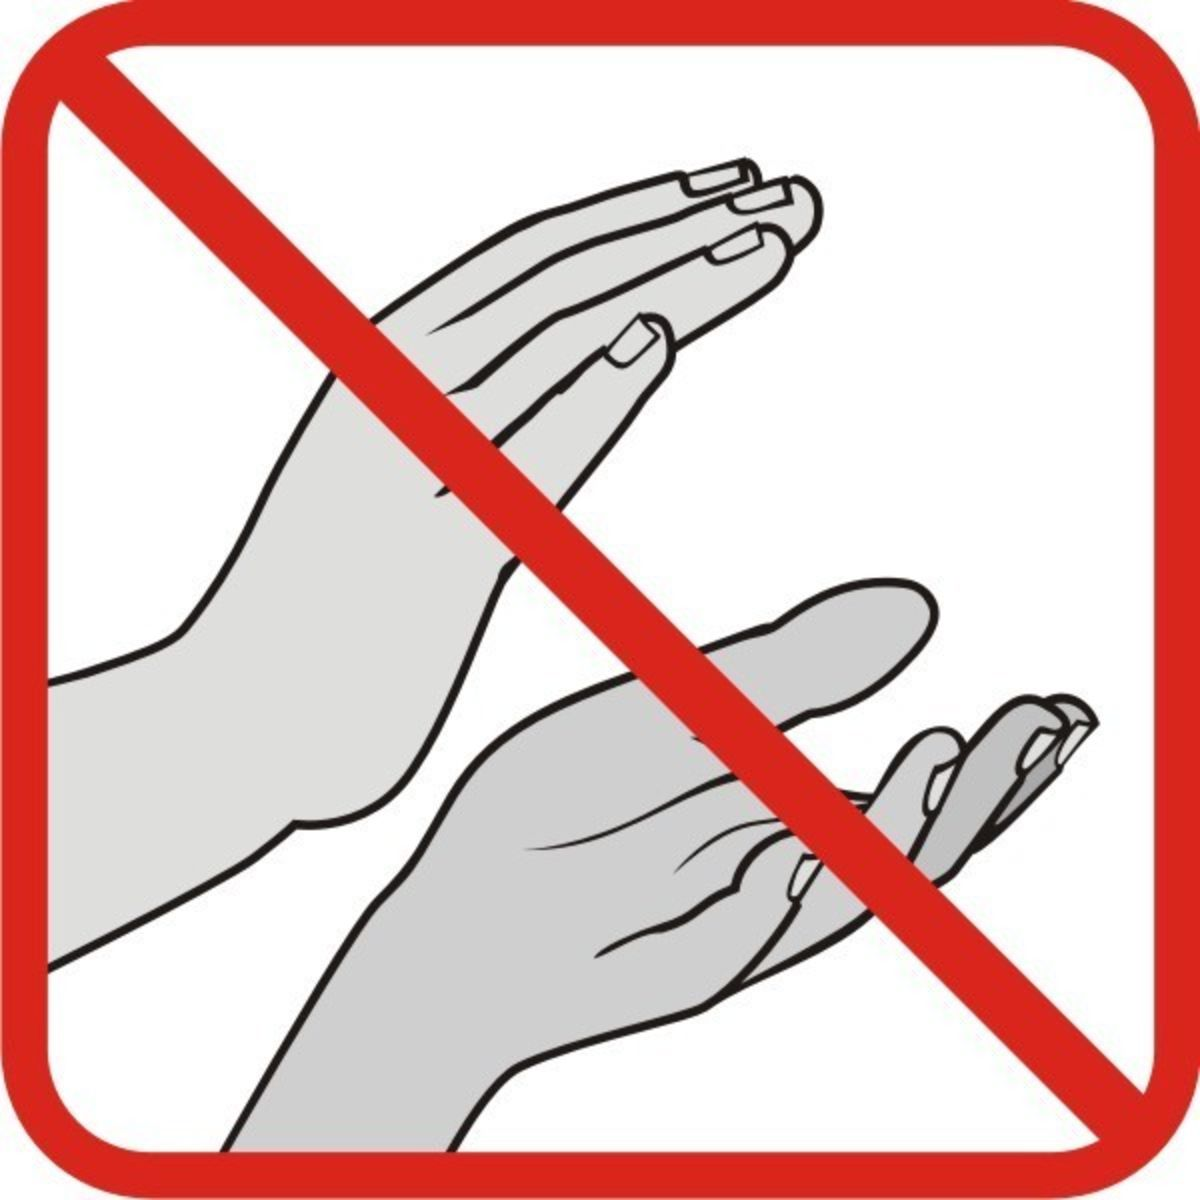 sign with a slash through clapping hands